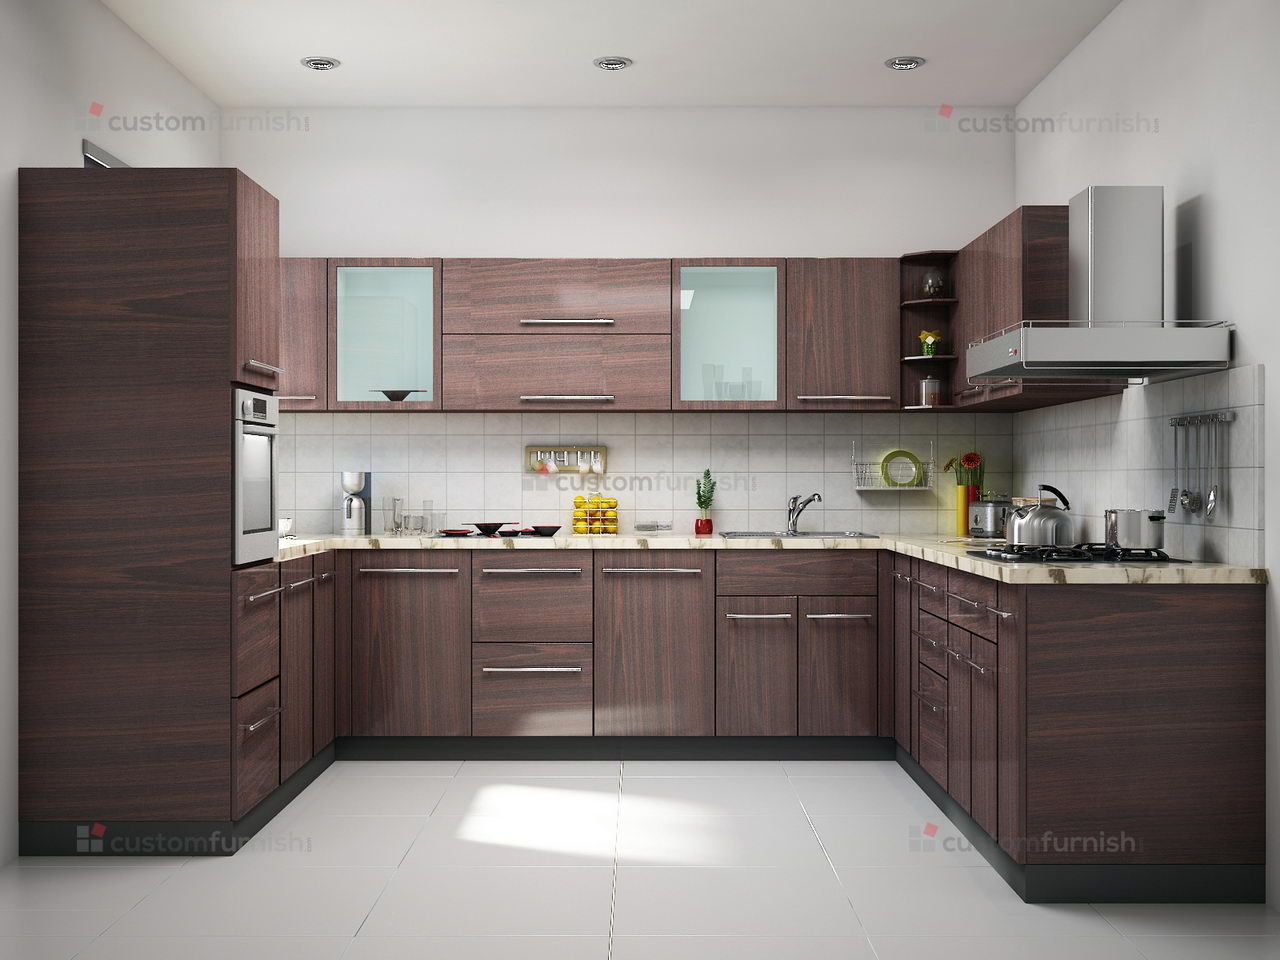 Kitchen styles designs different kitchen styles designs for Different kitchen design ideas